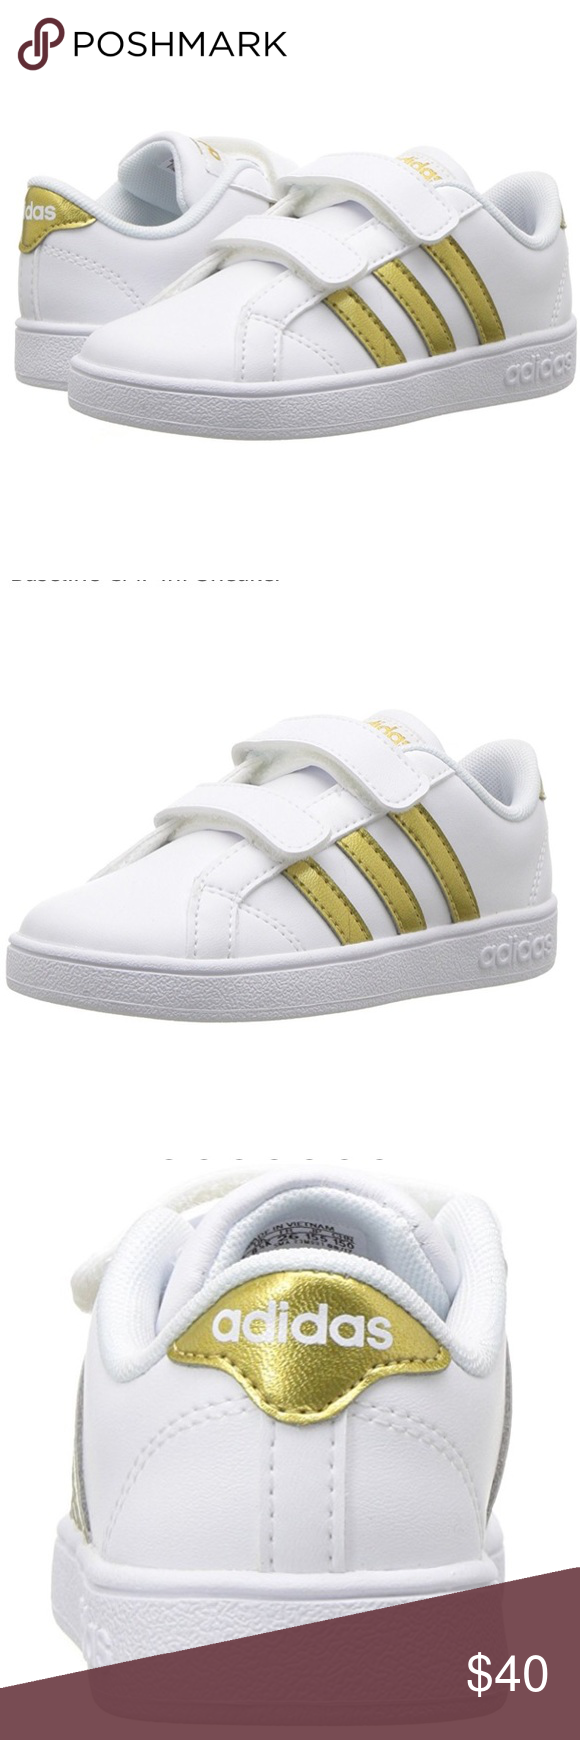 Kids adidas baseline CMF Inf shoes Size 10k (kids) New with box and tags  White with gold (logo) adidas Shoes Sneakers 766a09100